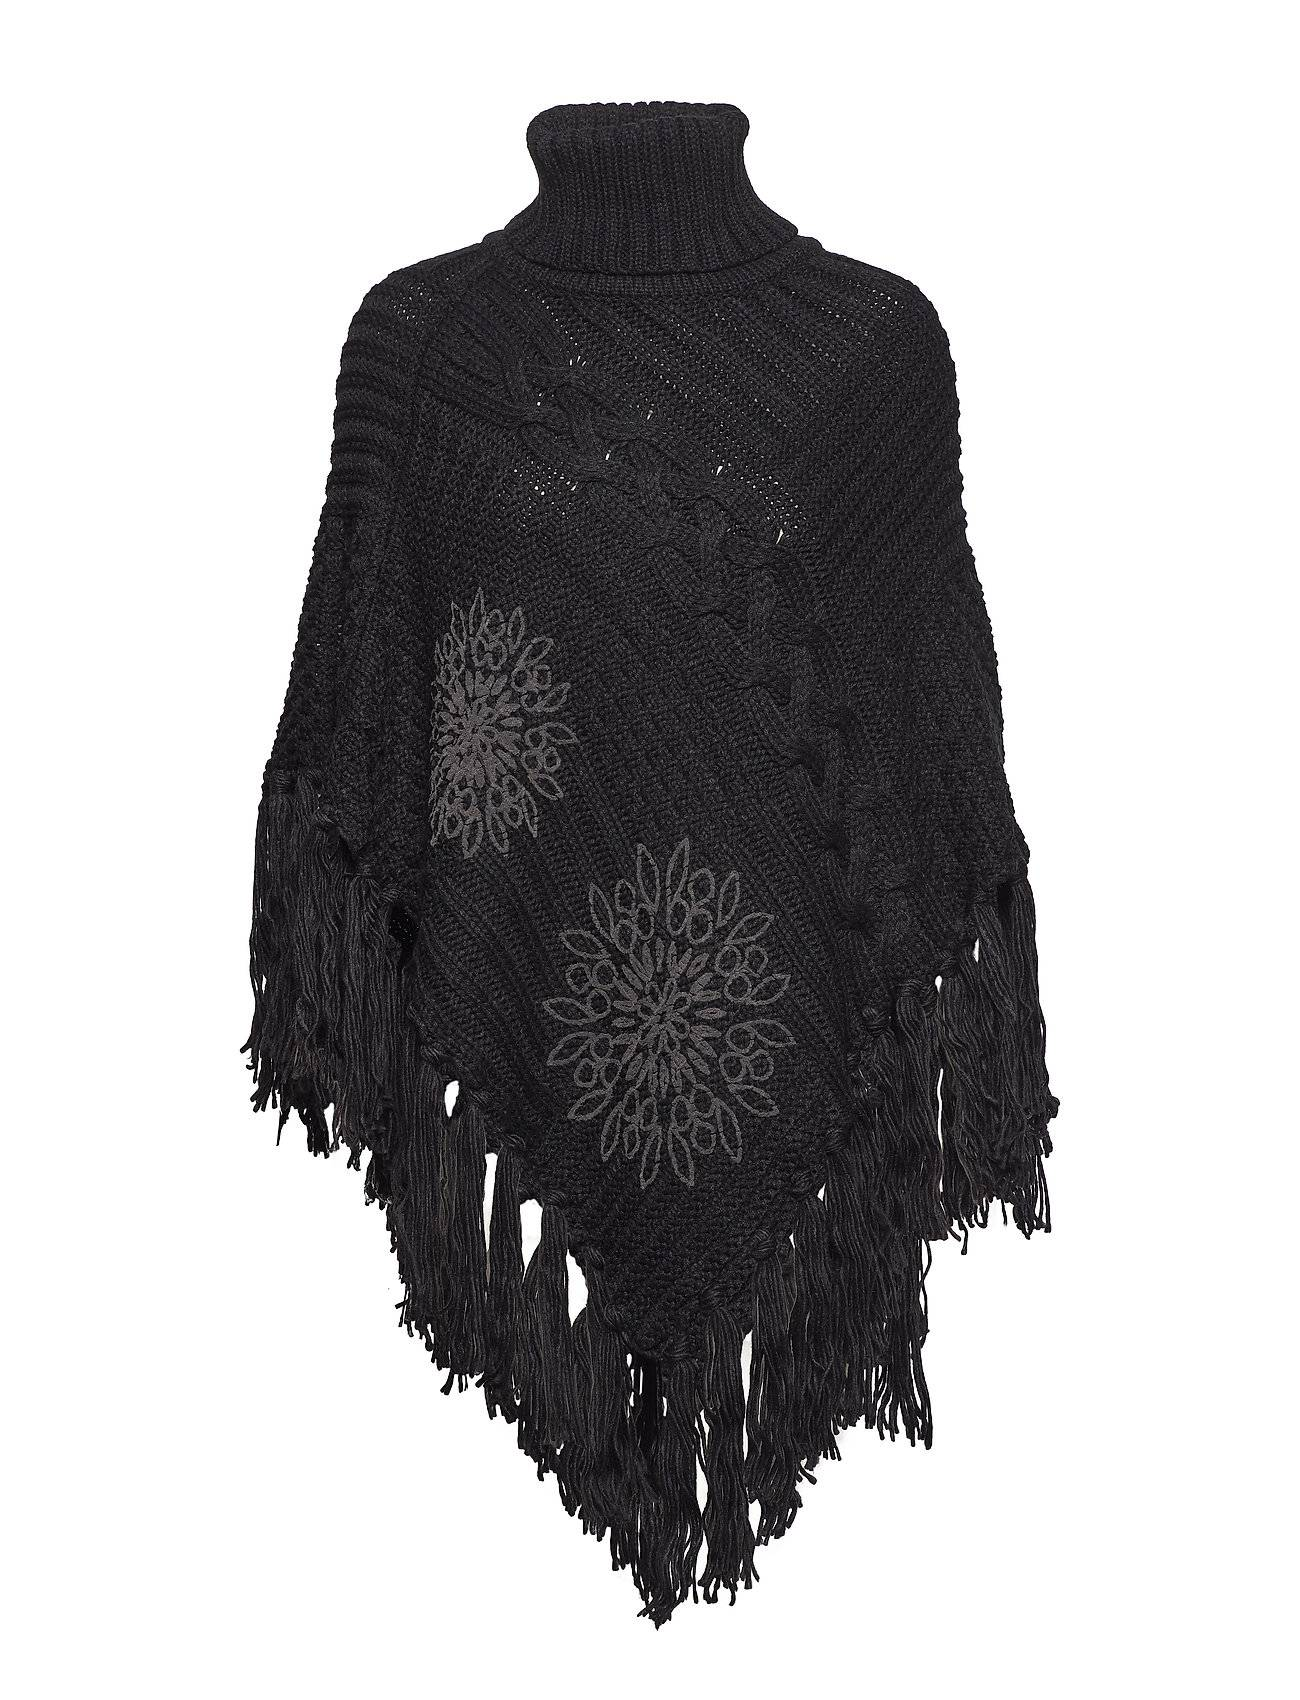 Desigual Accessories Knitted Poncho Soft